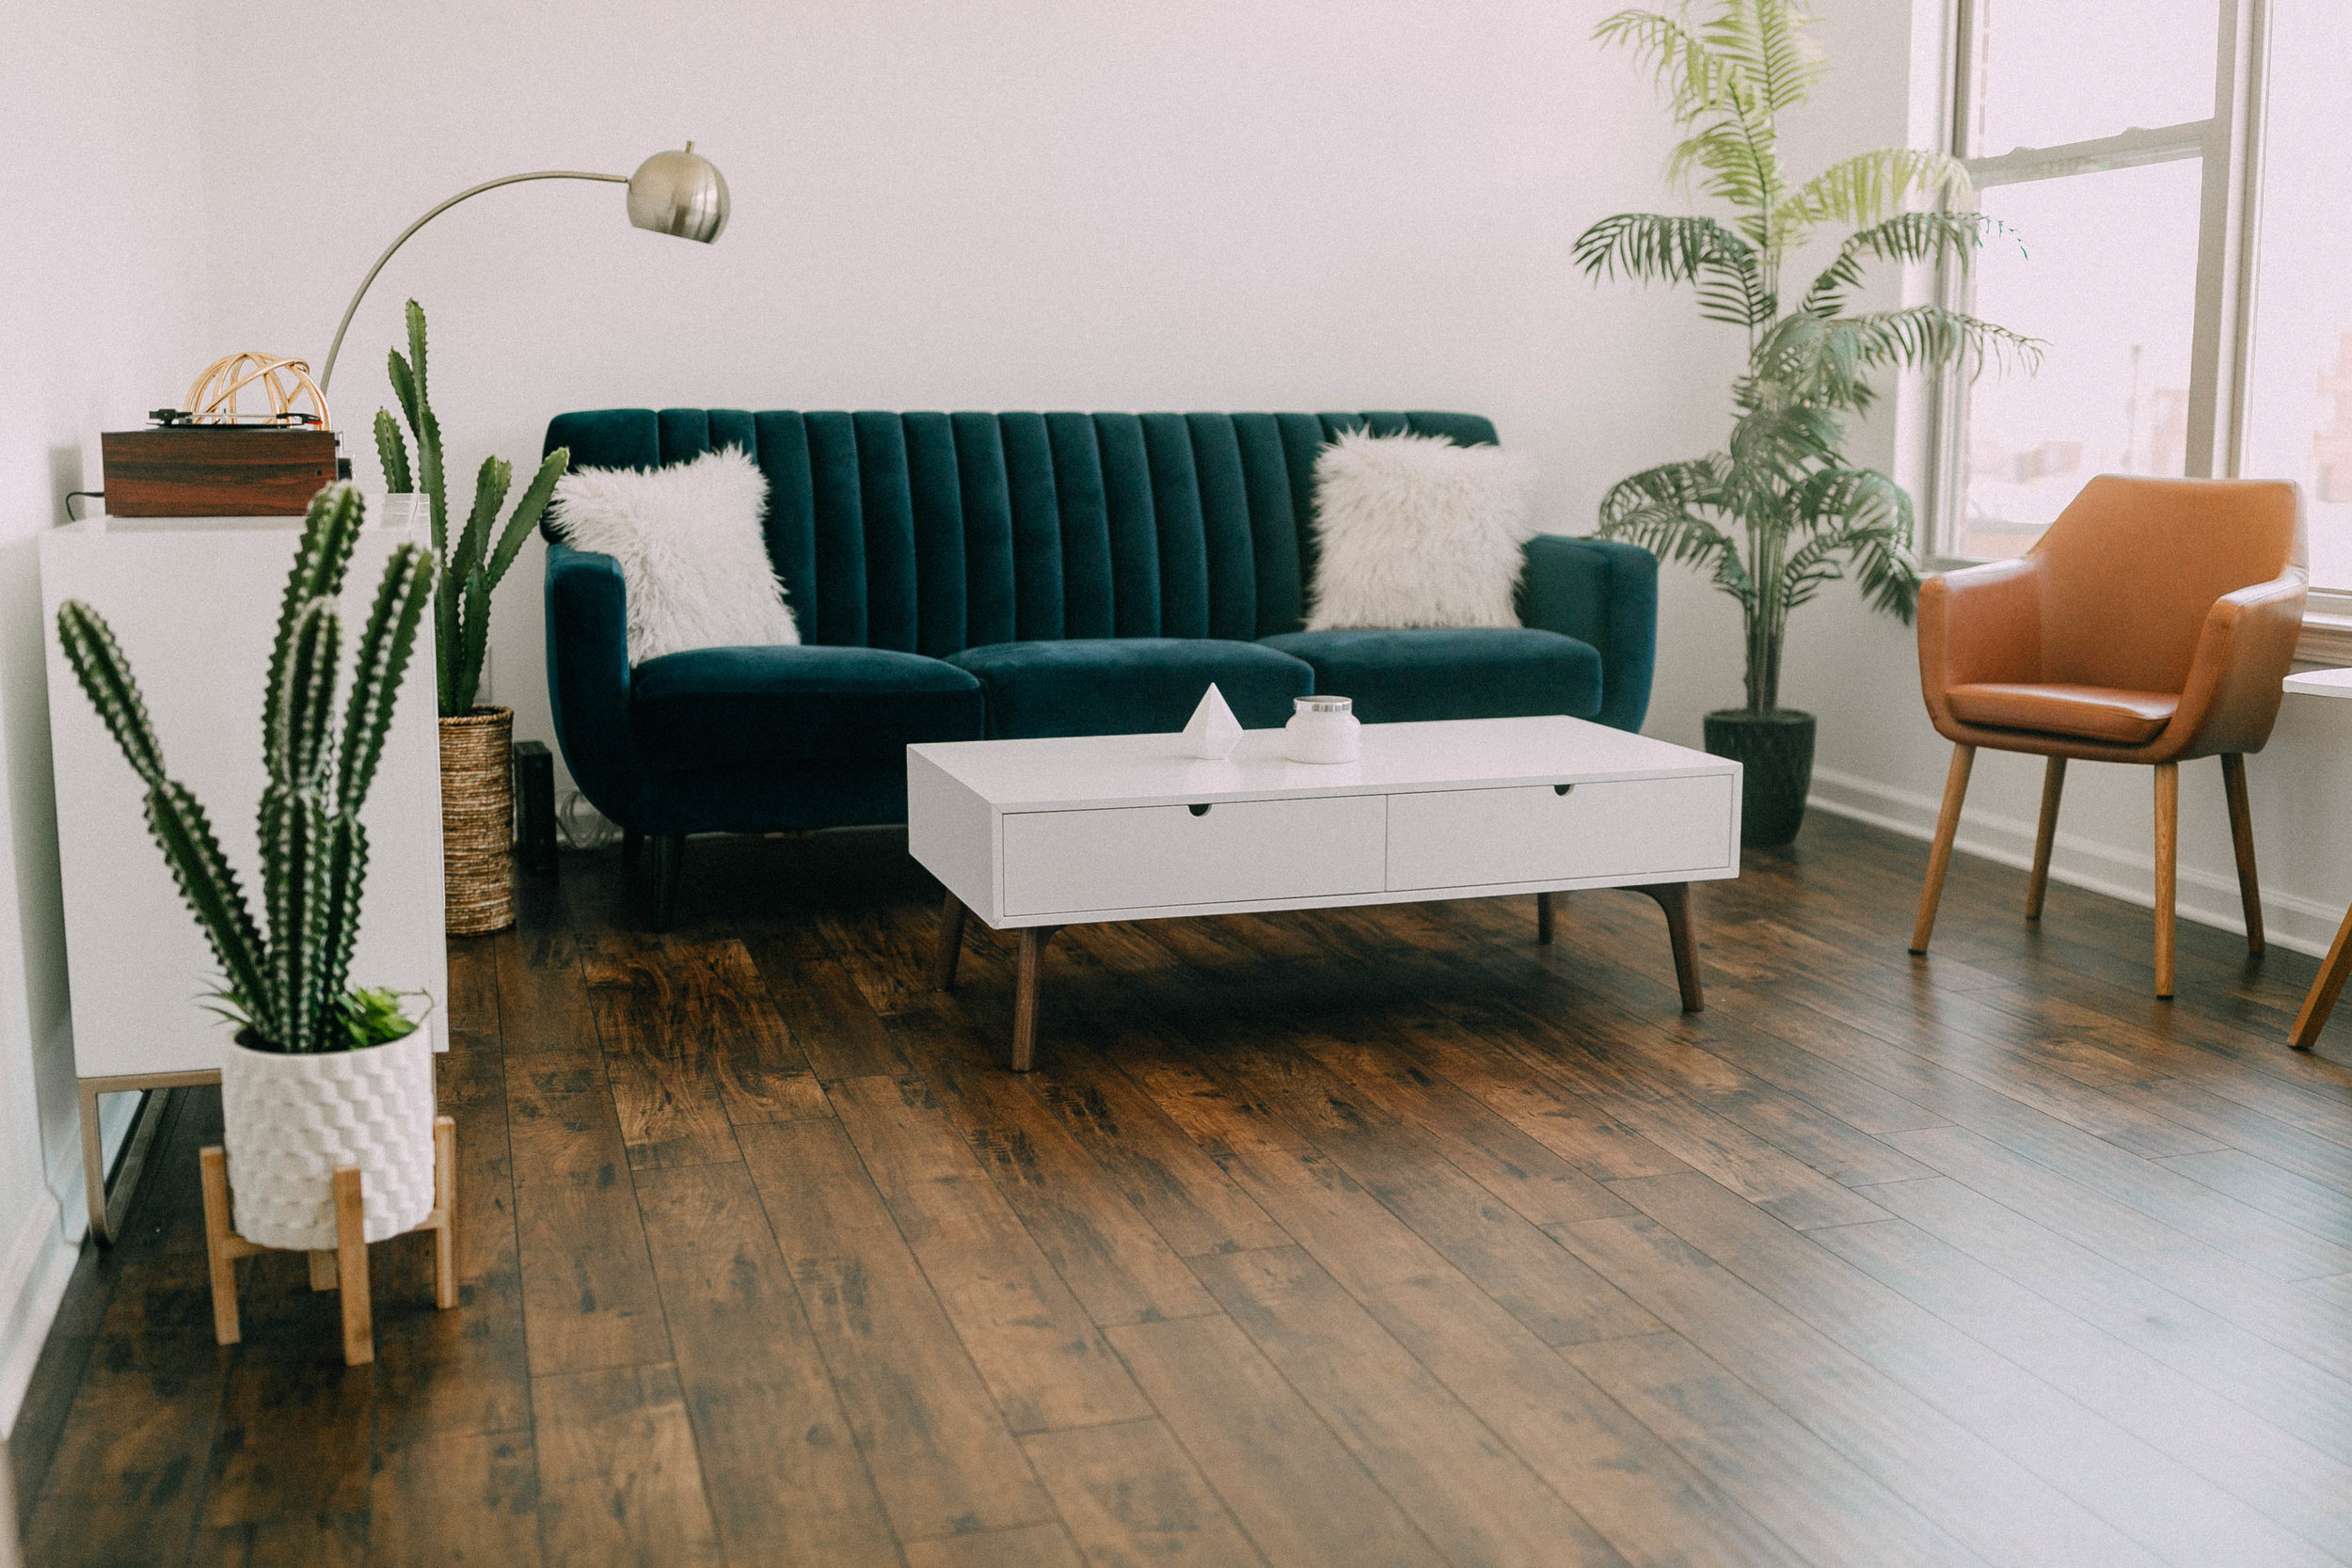 Mid Century Modern Living Room Reveal With At Home Lemon